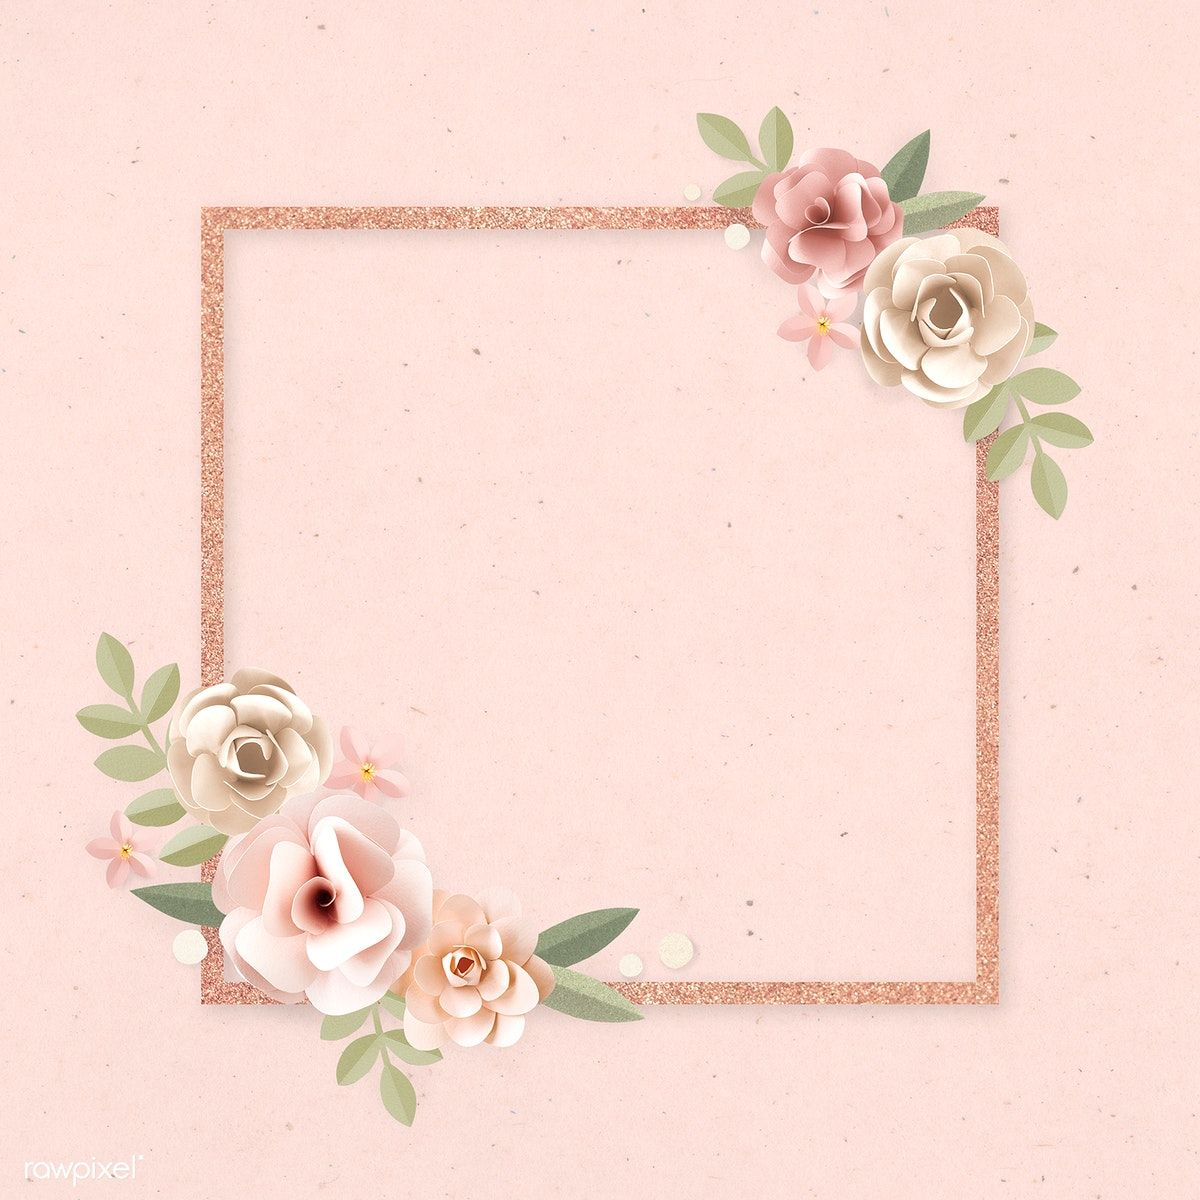 Download free illustration of Square paper craft flower